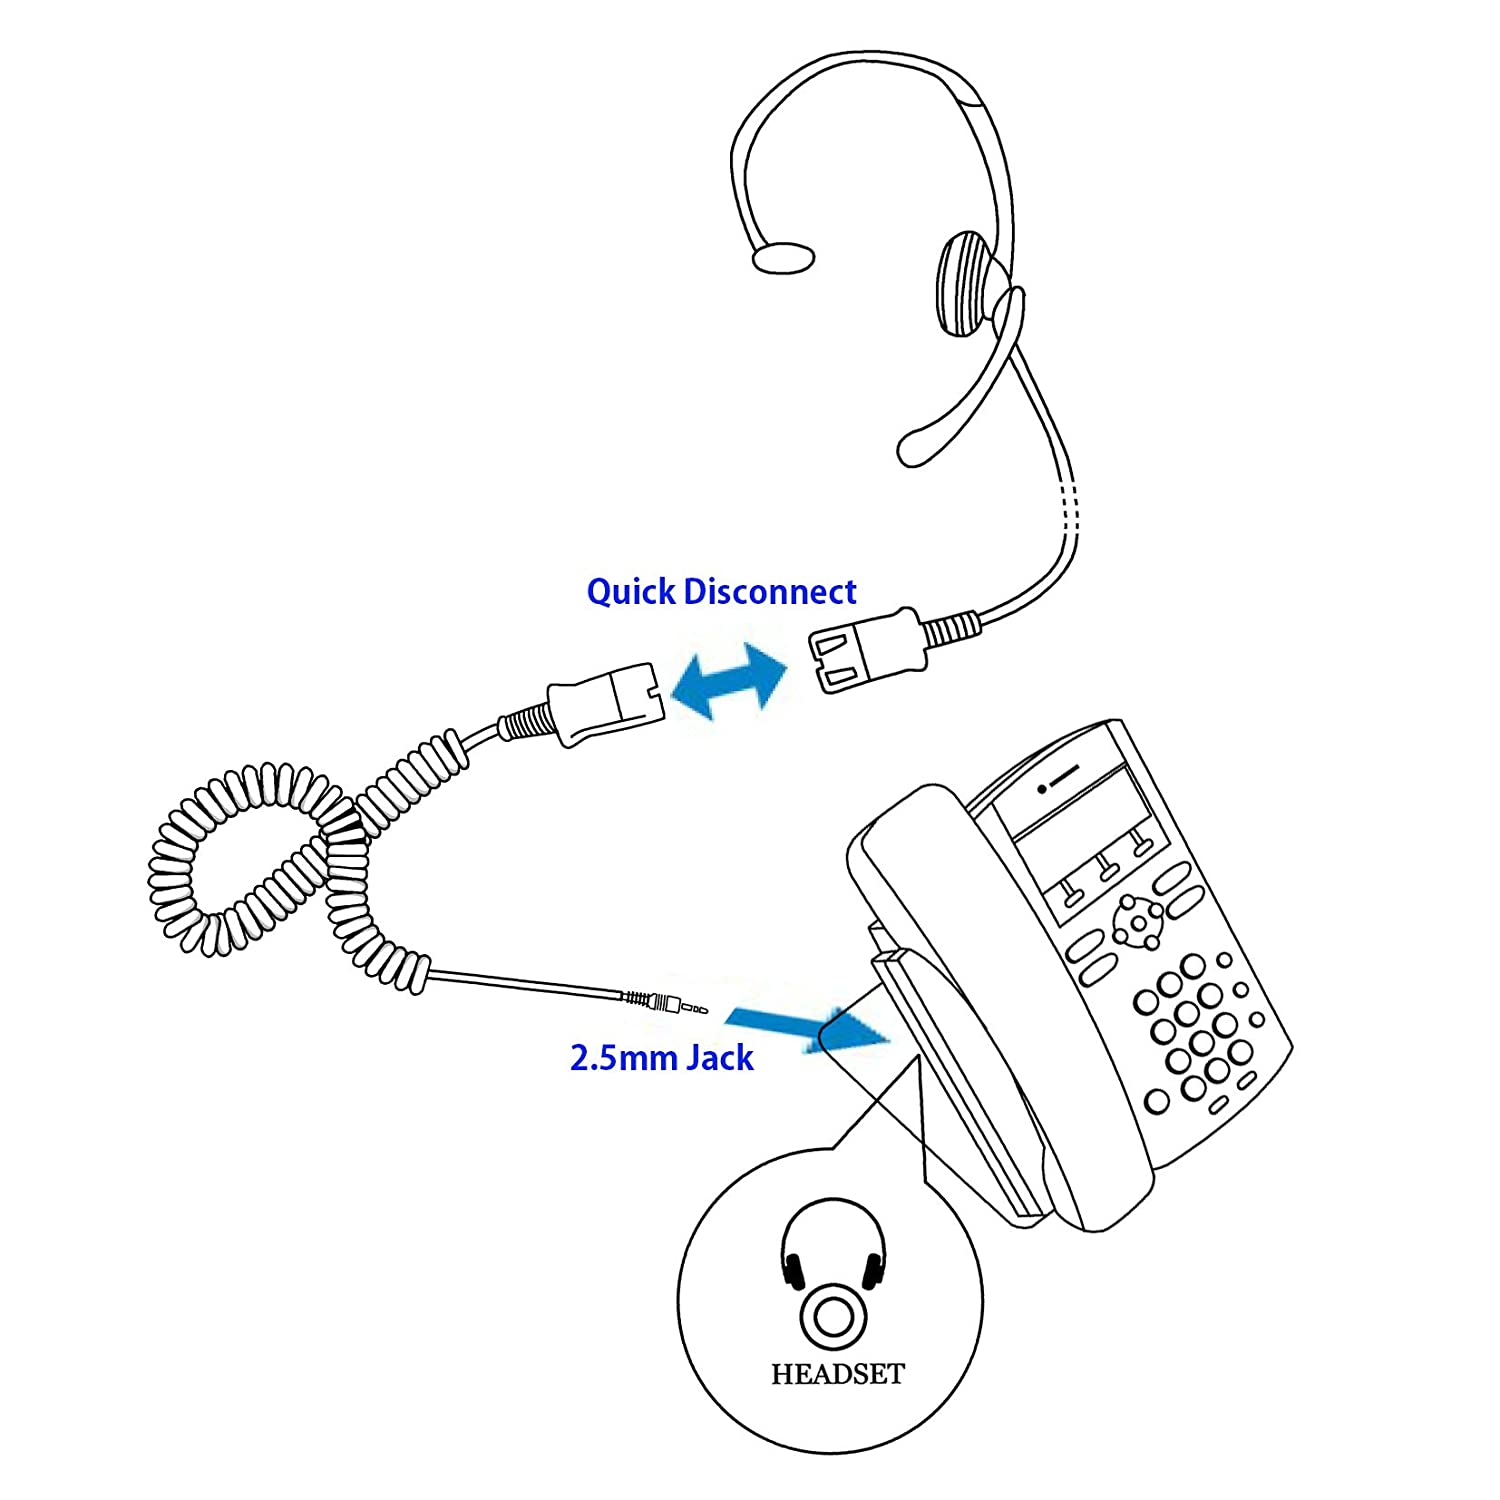 lucent rj9 wiring diagram wiring library amazon com best sound monaural headset 2 5 mm headset quick disconnet jack combo